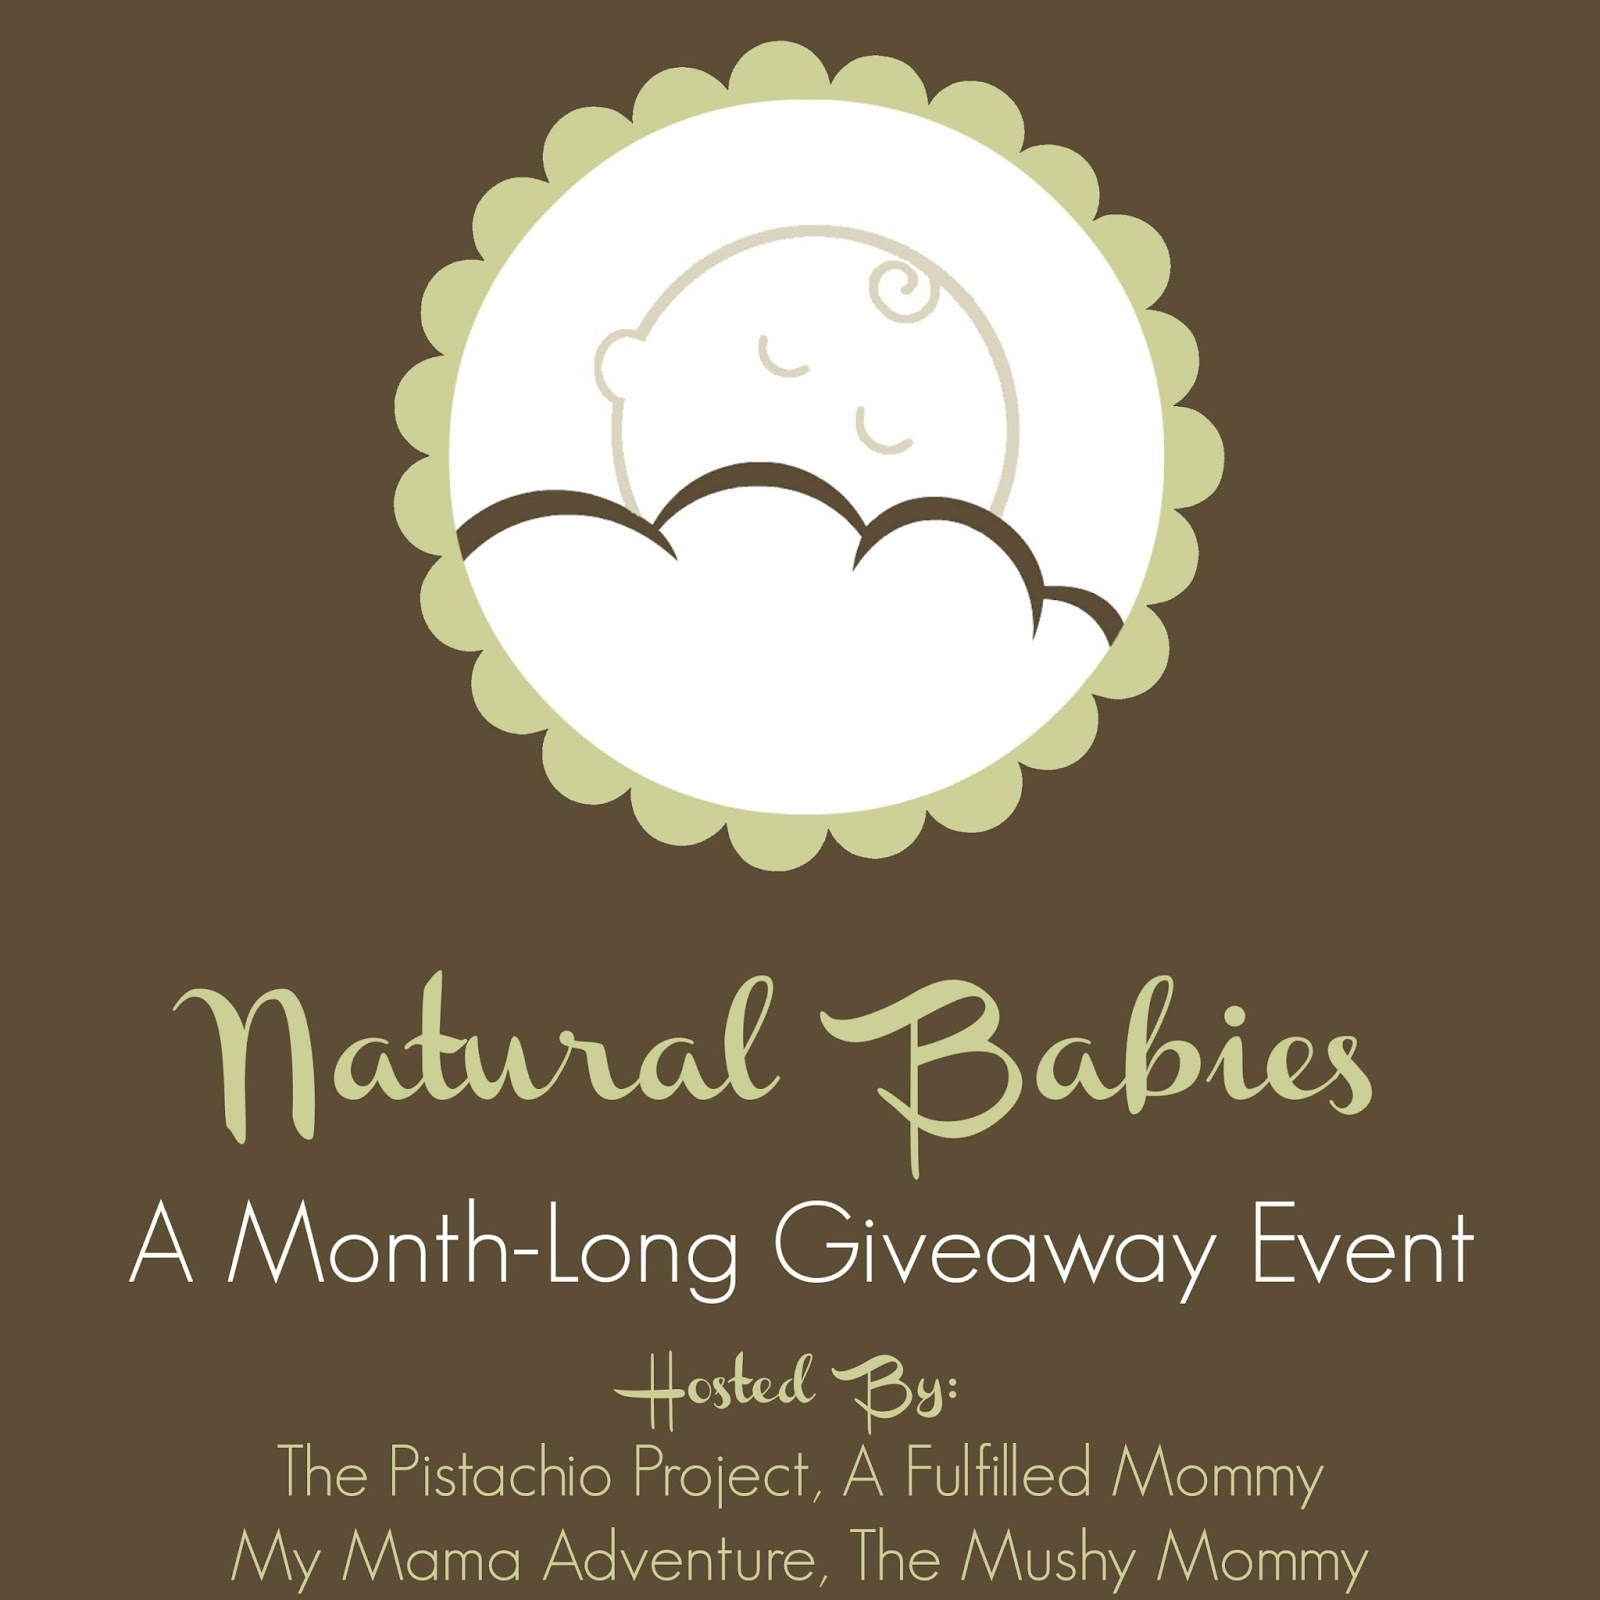 Natural Babies Giveaway Event